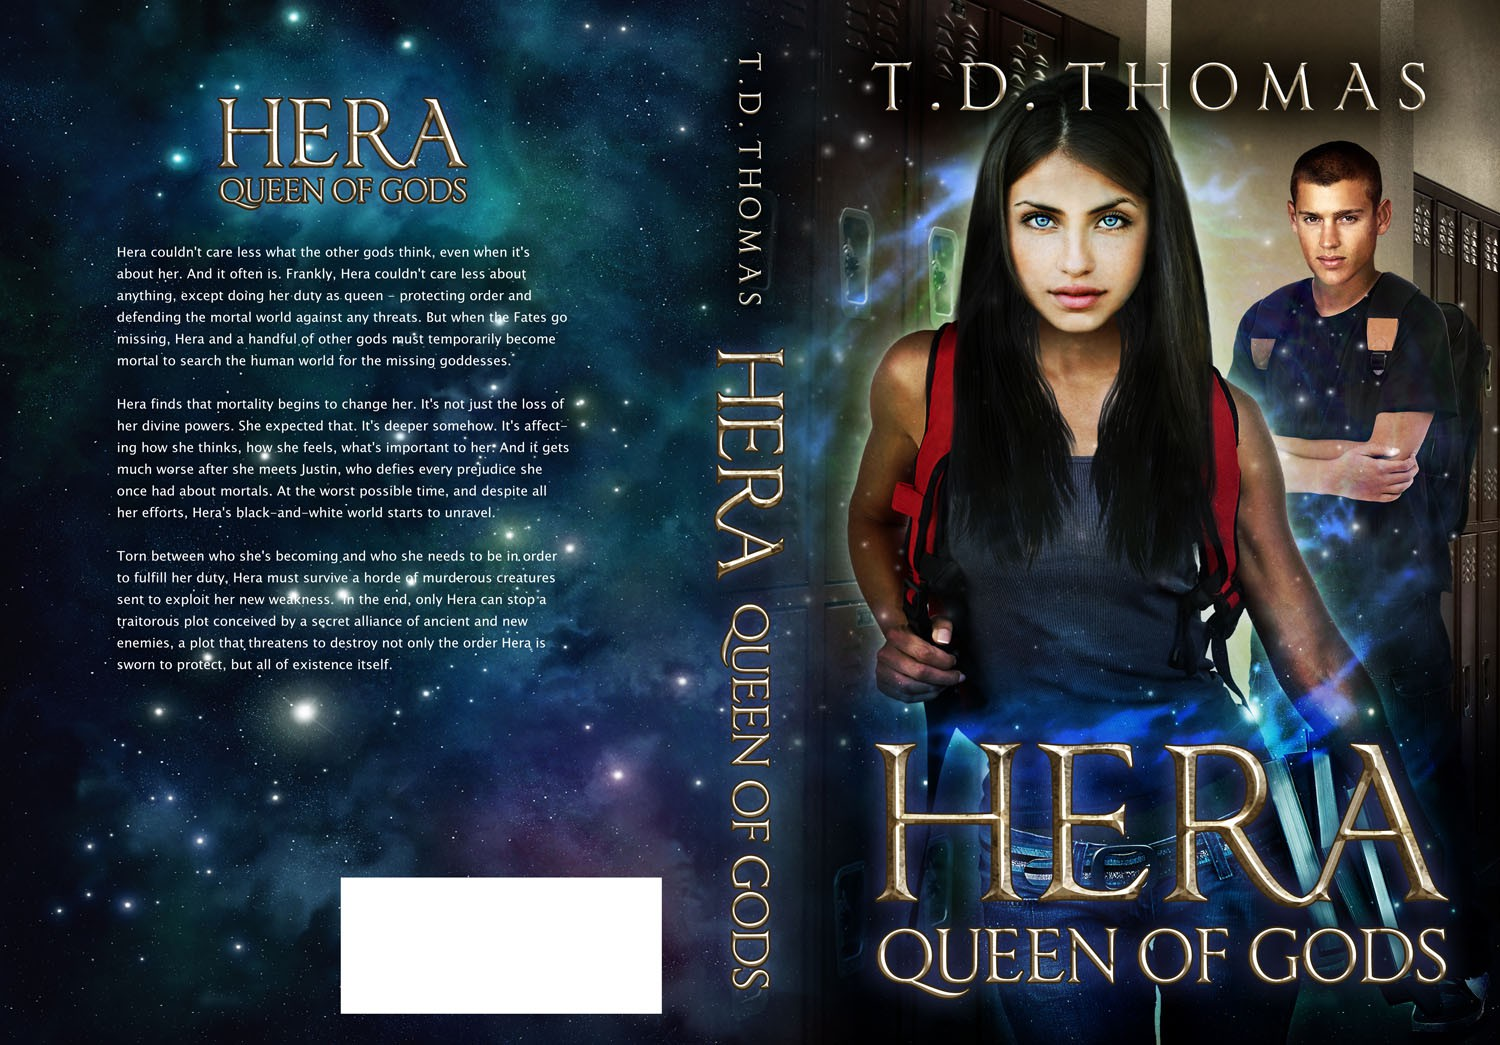 Help T.D. Thomas: Need an eye-catching book cover for an urban fantasy novel